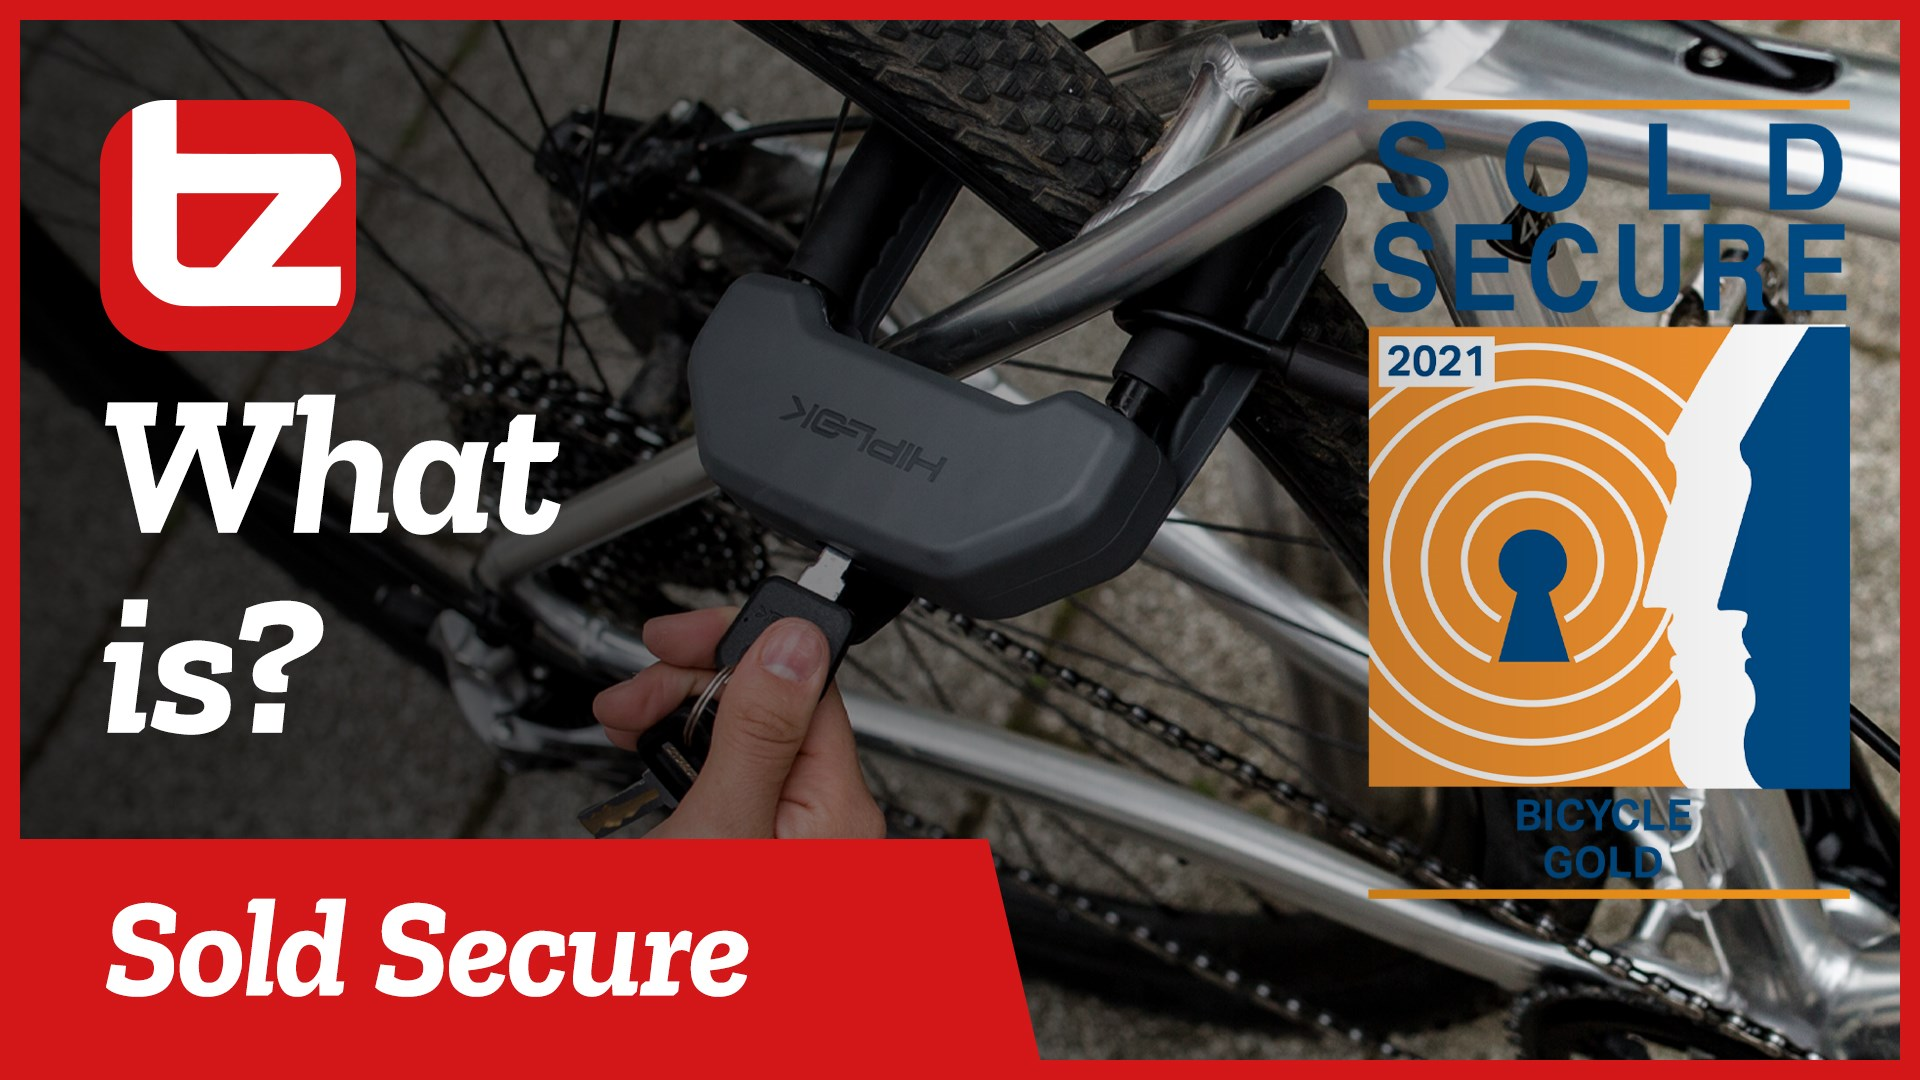 What Is a Sold Secure Lock? | Tredz Bikes